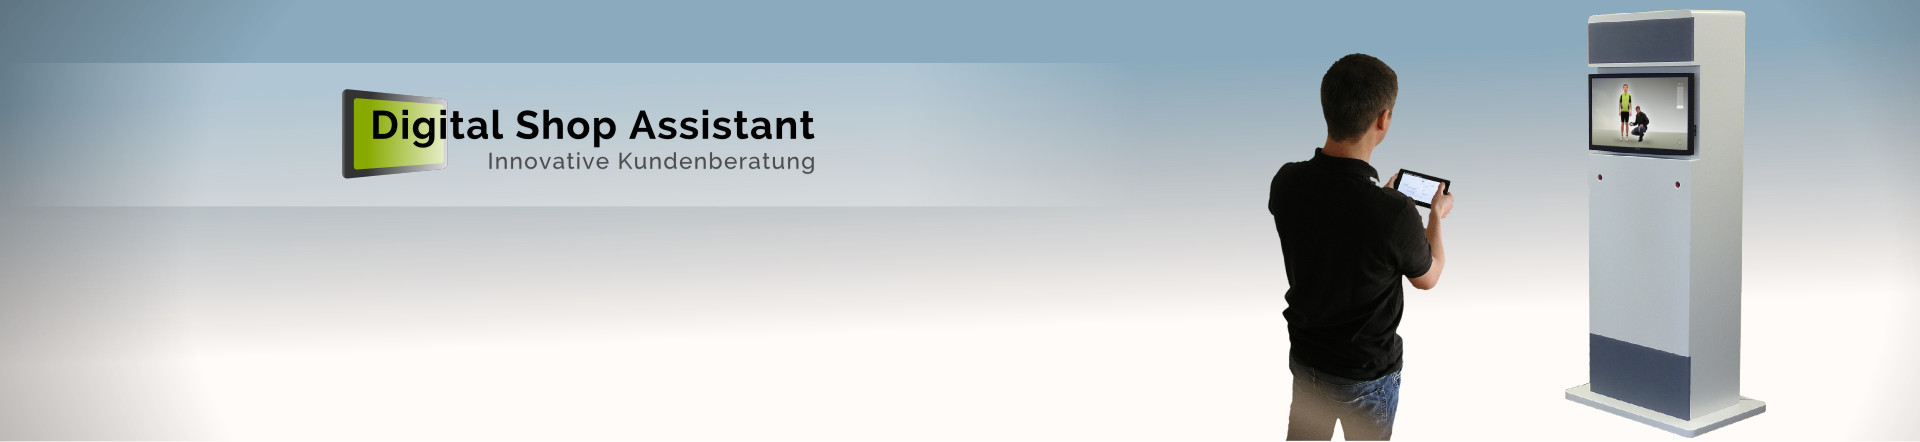 Banner: Digital Shop Assistant - Innovative Kundenberatung